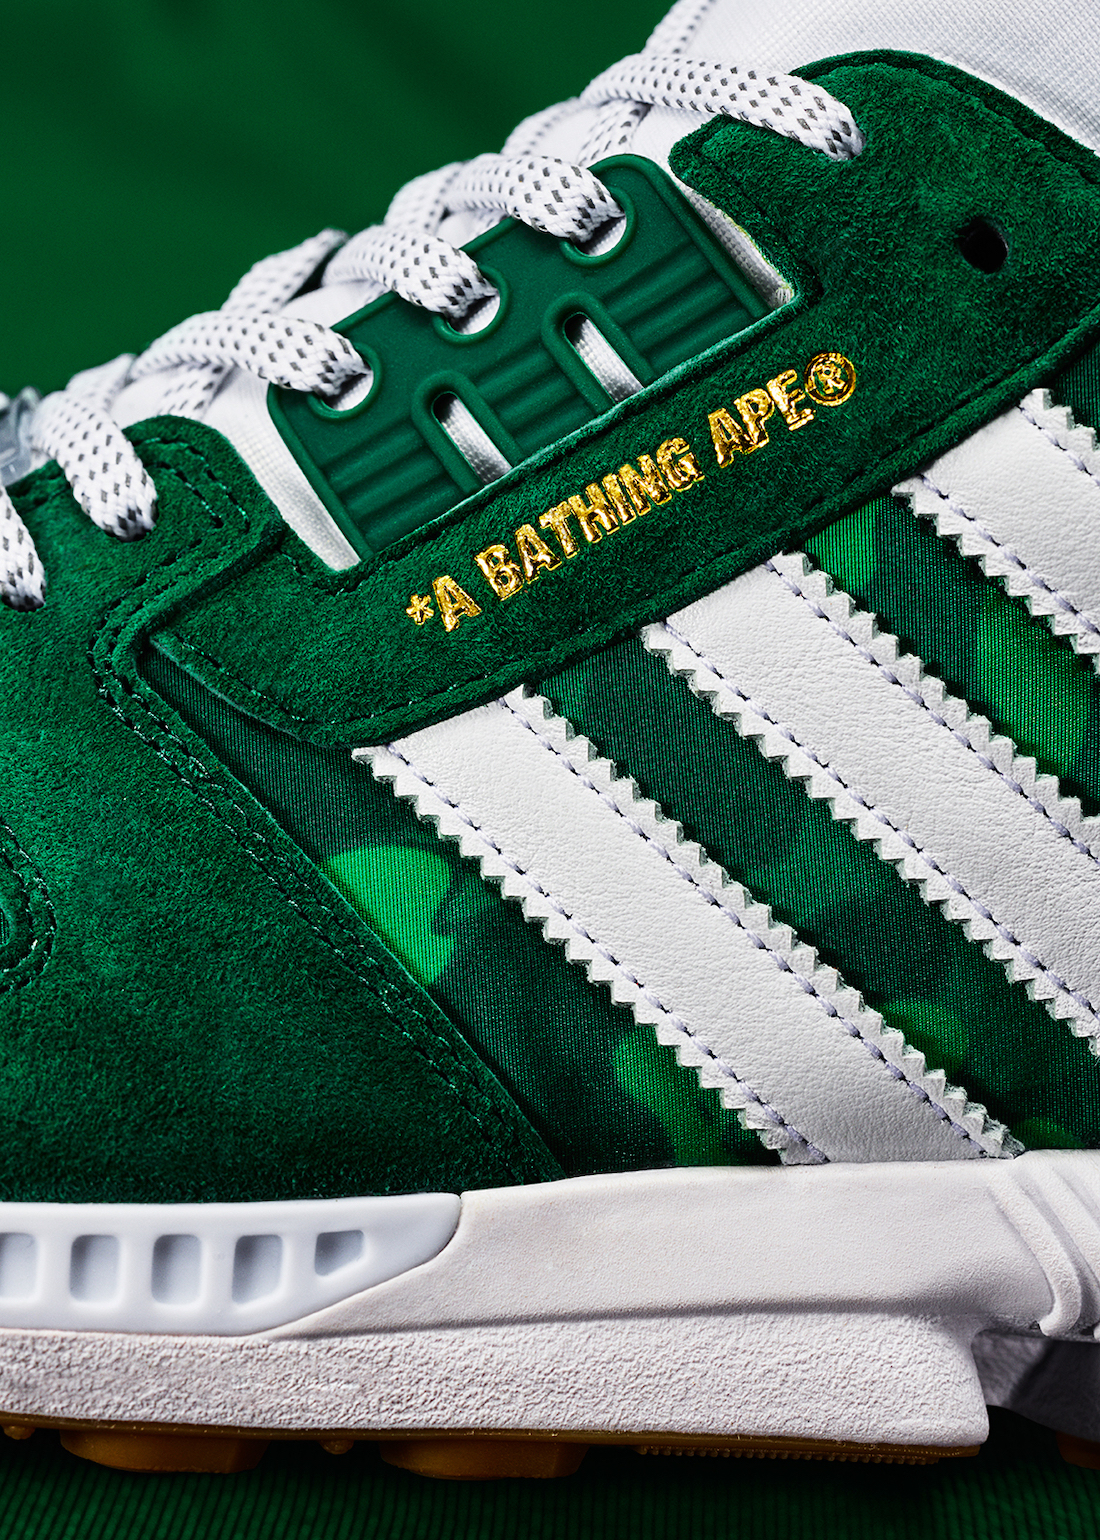 BAPE Undefeated adidas ZX 8000 FY8851 Release Date Info